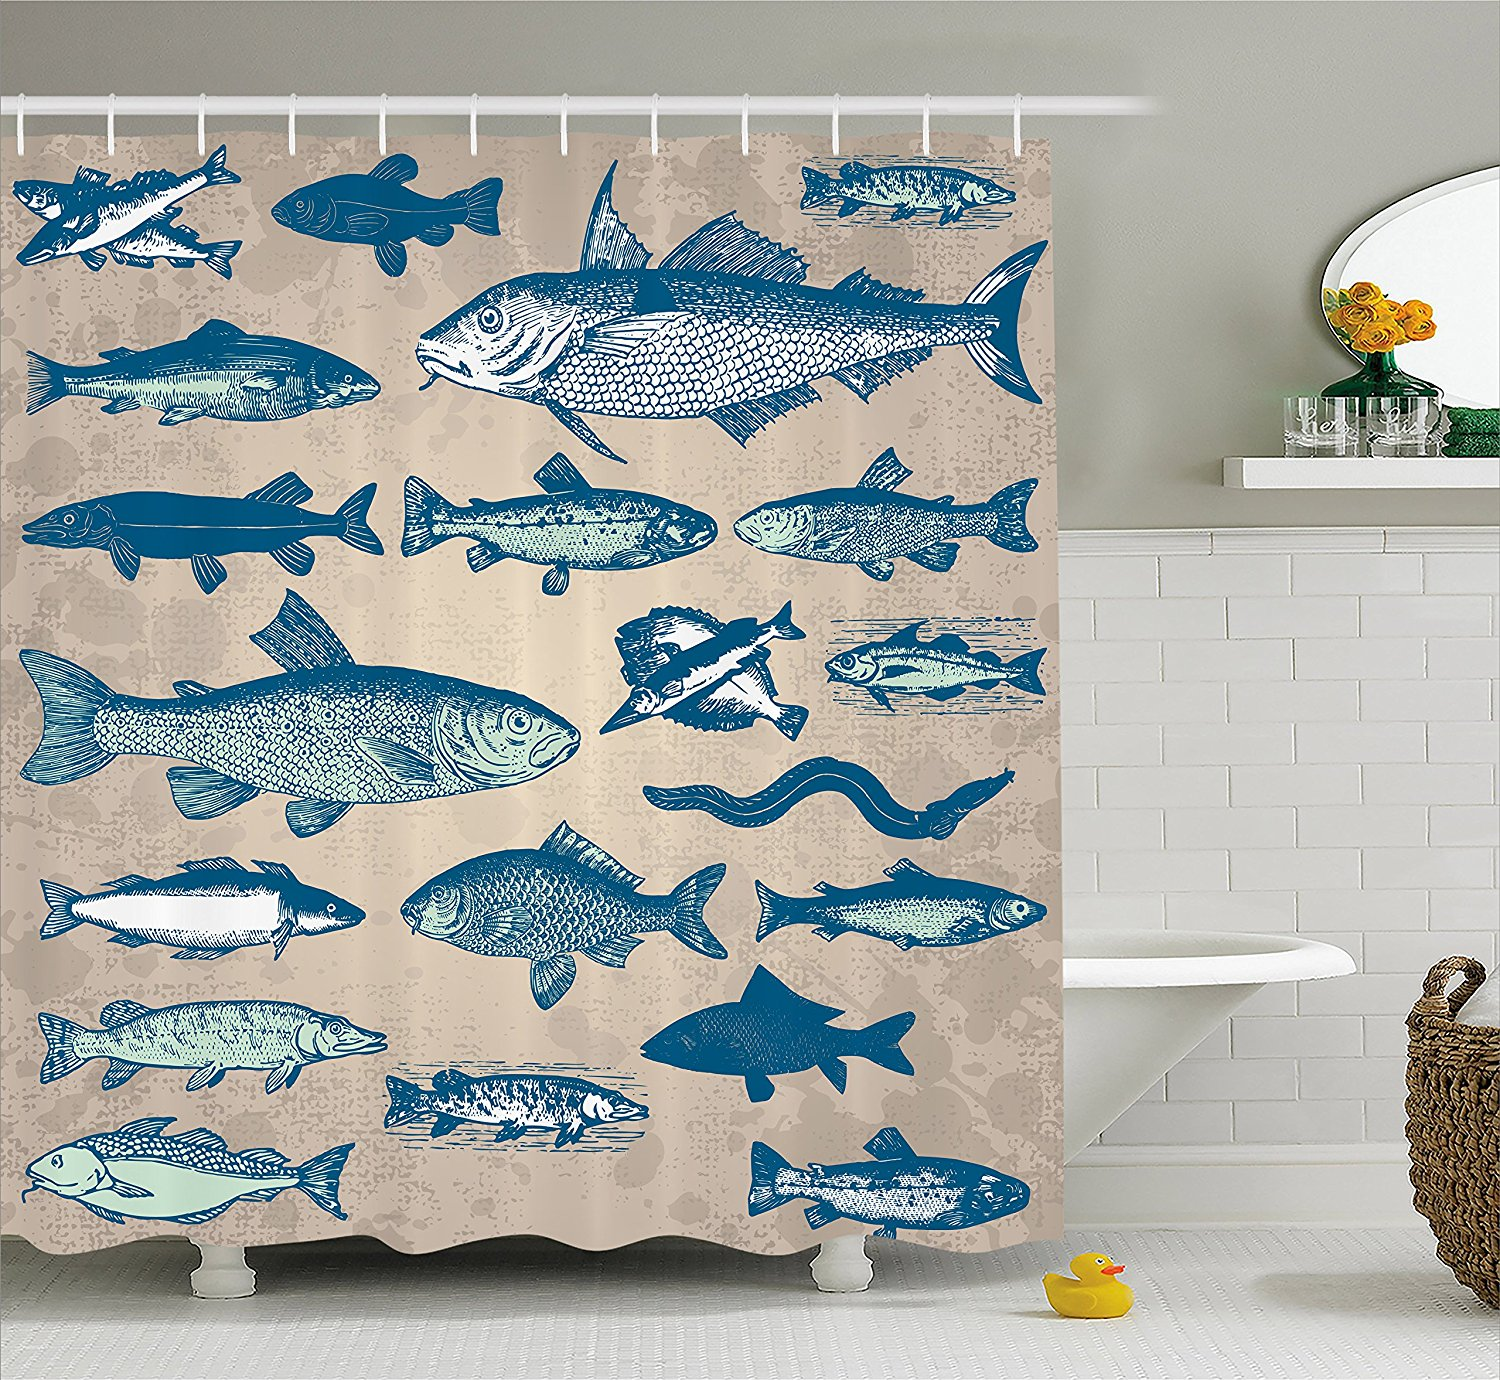 Us 14 17 38 Off Fish Shower Curtain Nautical Coastal Marine Decor Sea Creatures Tropical Prints Fishing Underwater Beach Bath Polyester Fabric In